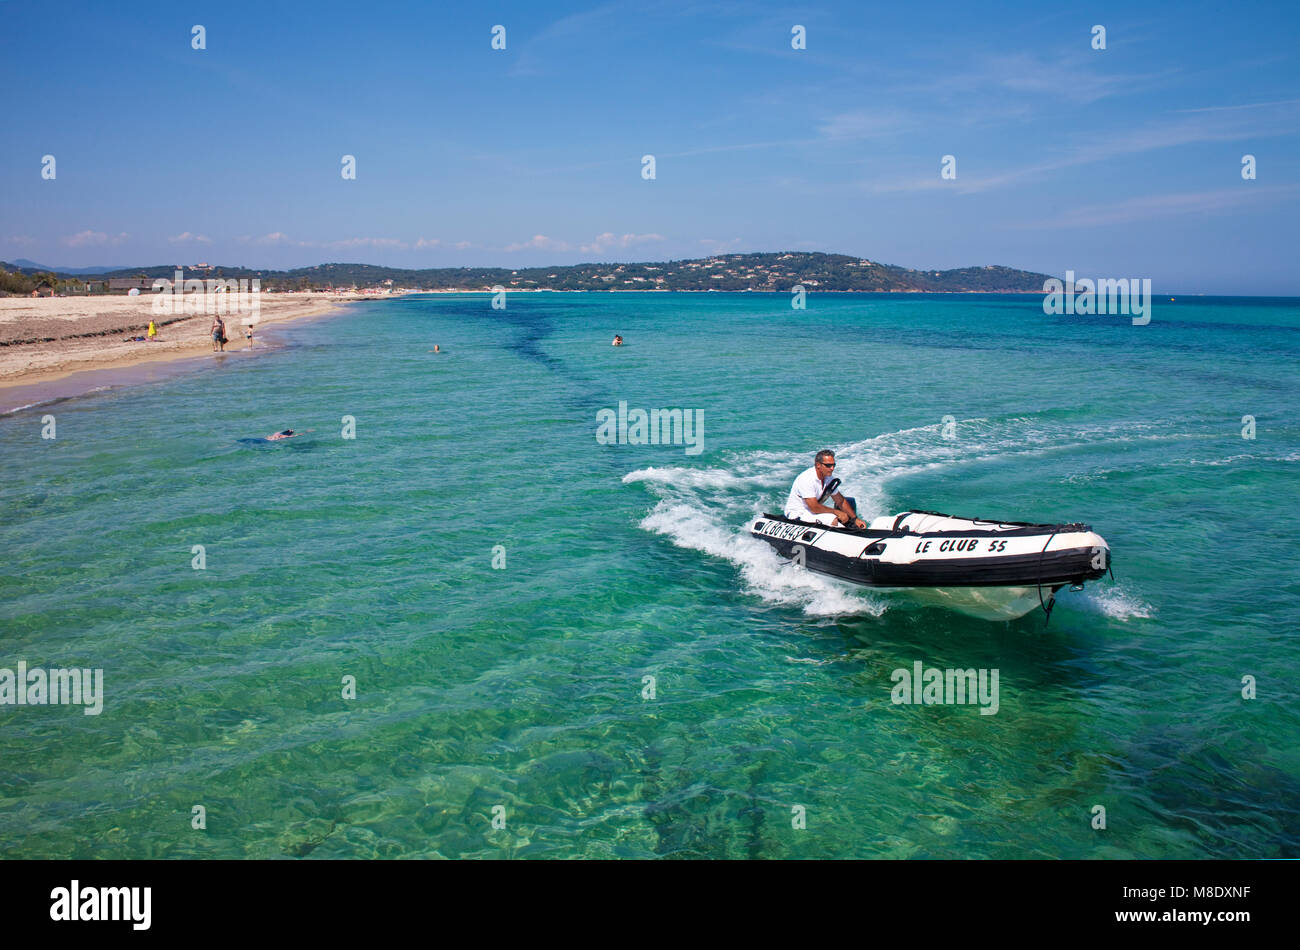 Inflatable dinghy cruising close Pampelonne beach, popular beach at Saint-Tropez, french riviera, South France, - Stock Image